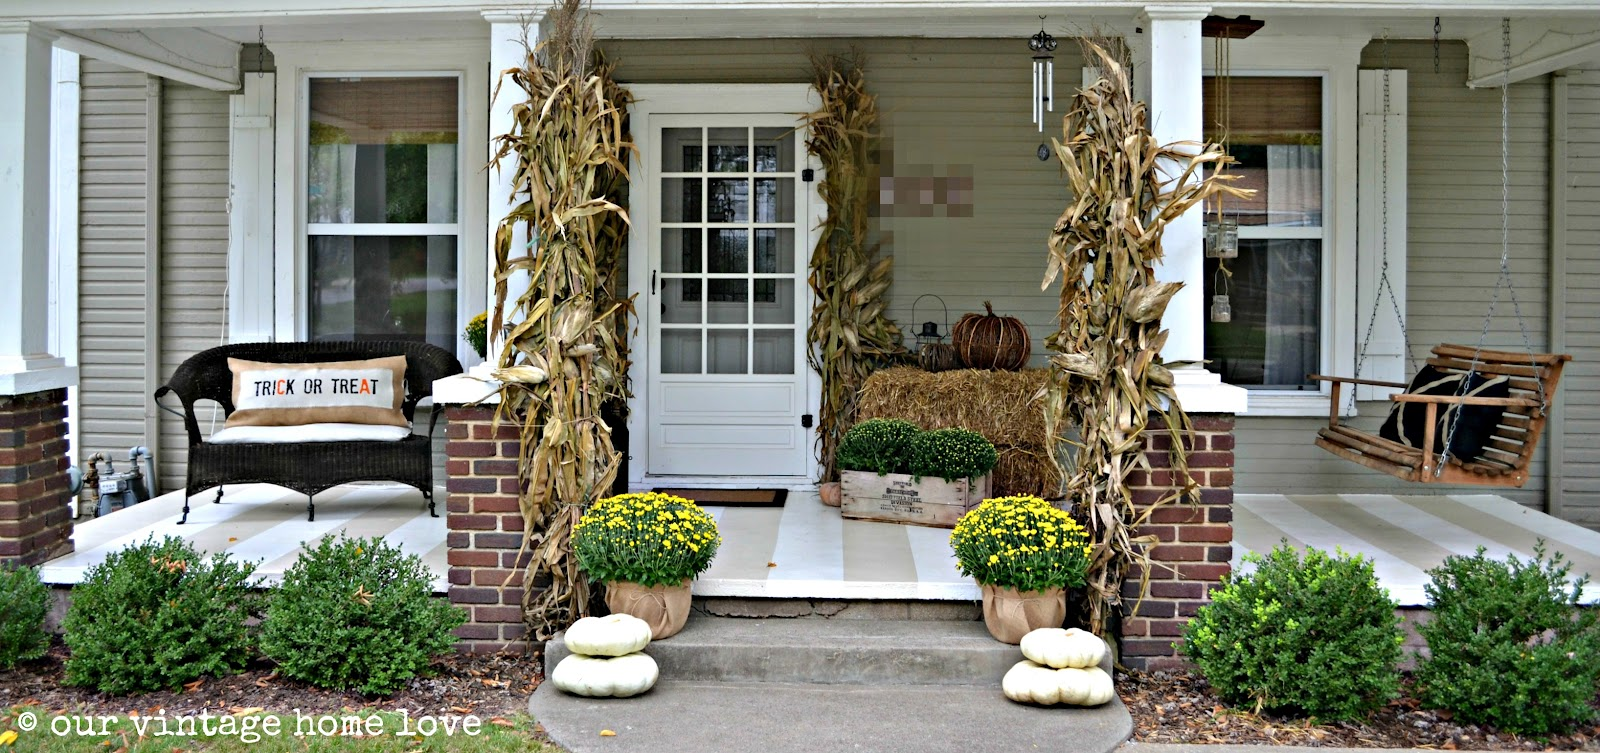 Vintage Home Love Autumn Porch Ideas